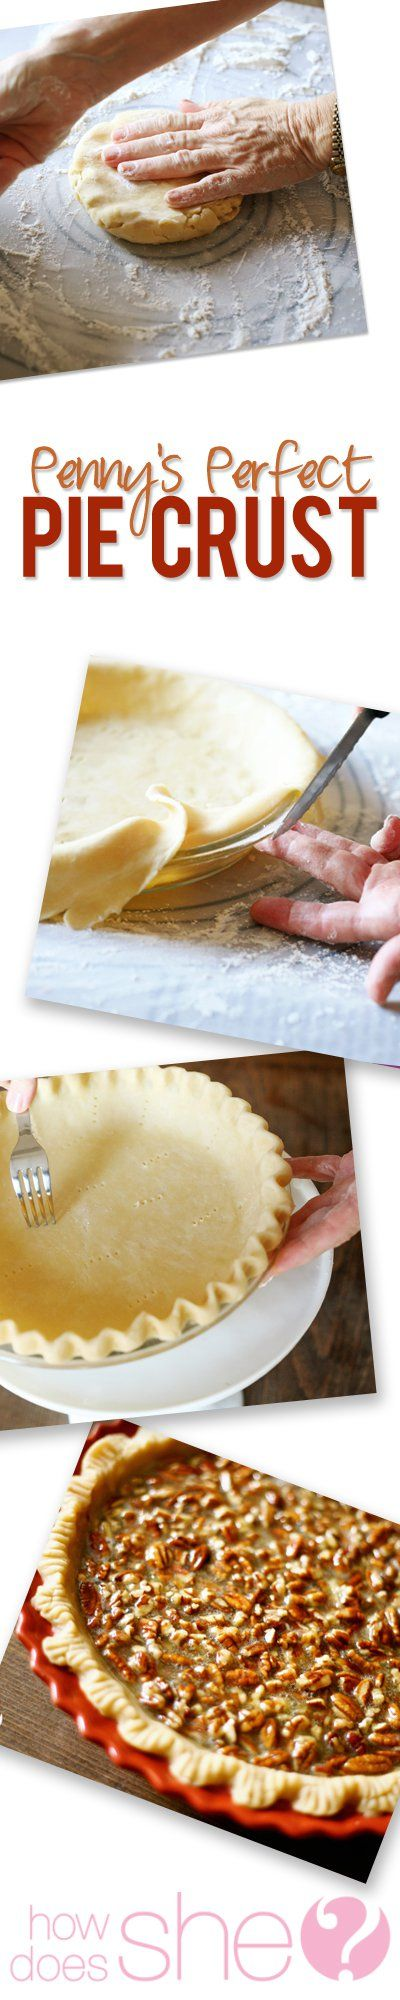 Pennys perfect pie crust 6 cups of flour (I use all-purpose) 3 cups of butter flavored Crisco (No other kind of shortening works as well) 3 tsp. Salt 1 to 1 1/3 cups water  For me this makes three double pies or six single shell pies.